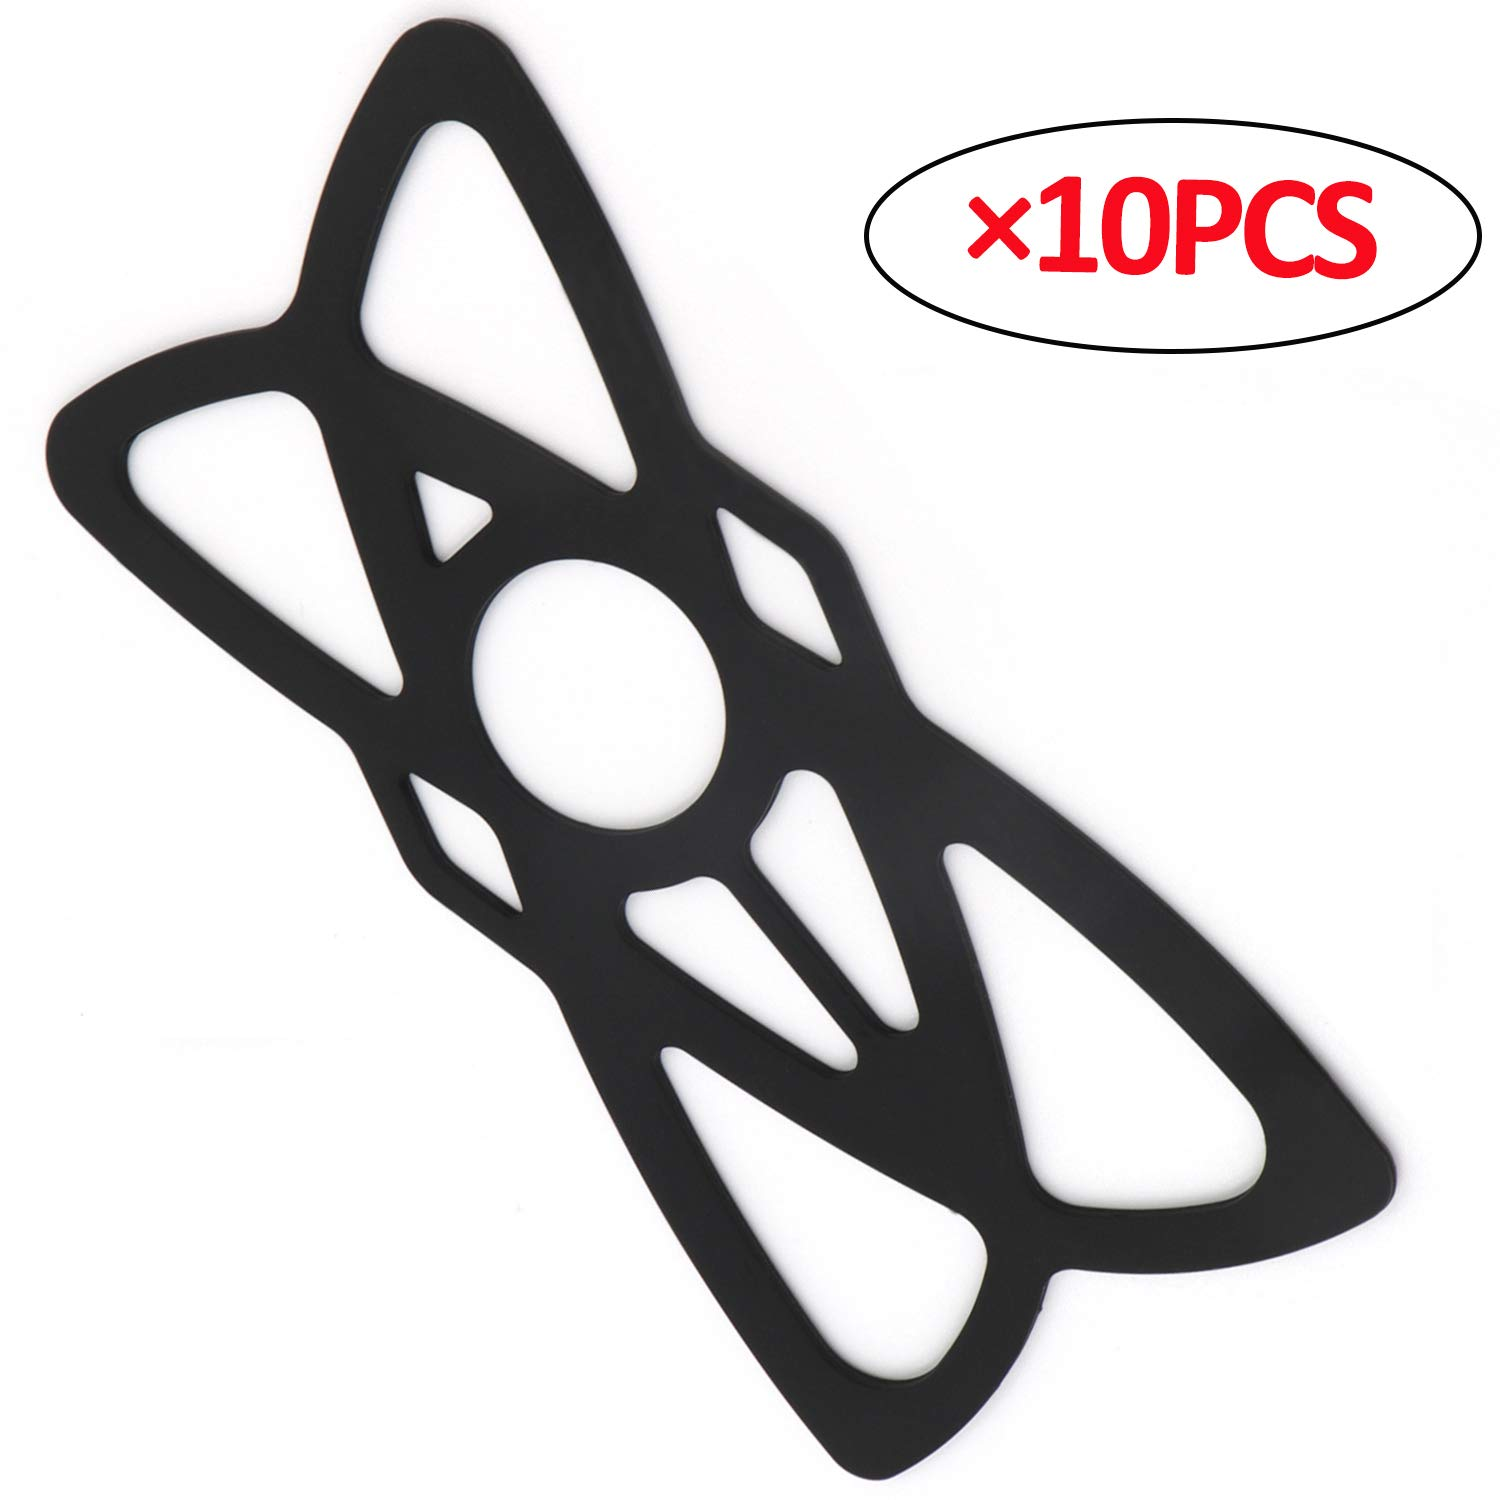 10PCS iMESTOU 10PCS Security Rubber Bands Silicone Replacement Straps for Motorcycle Phone Holders Bike//Bicycle Handlebar Cellphone Mounts